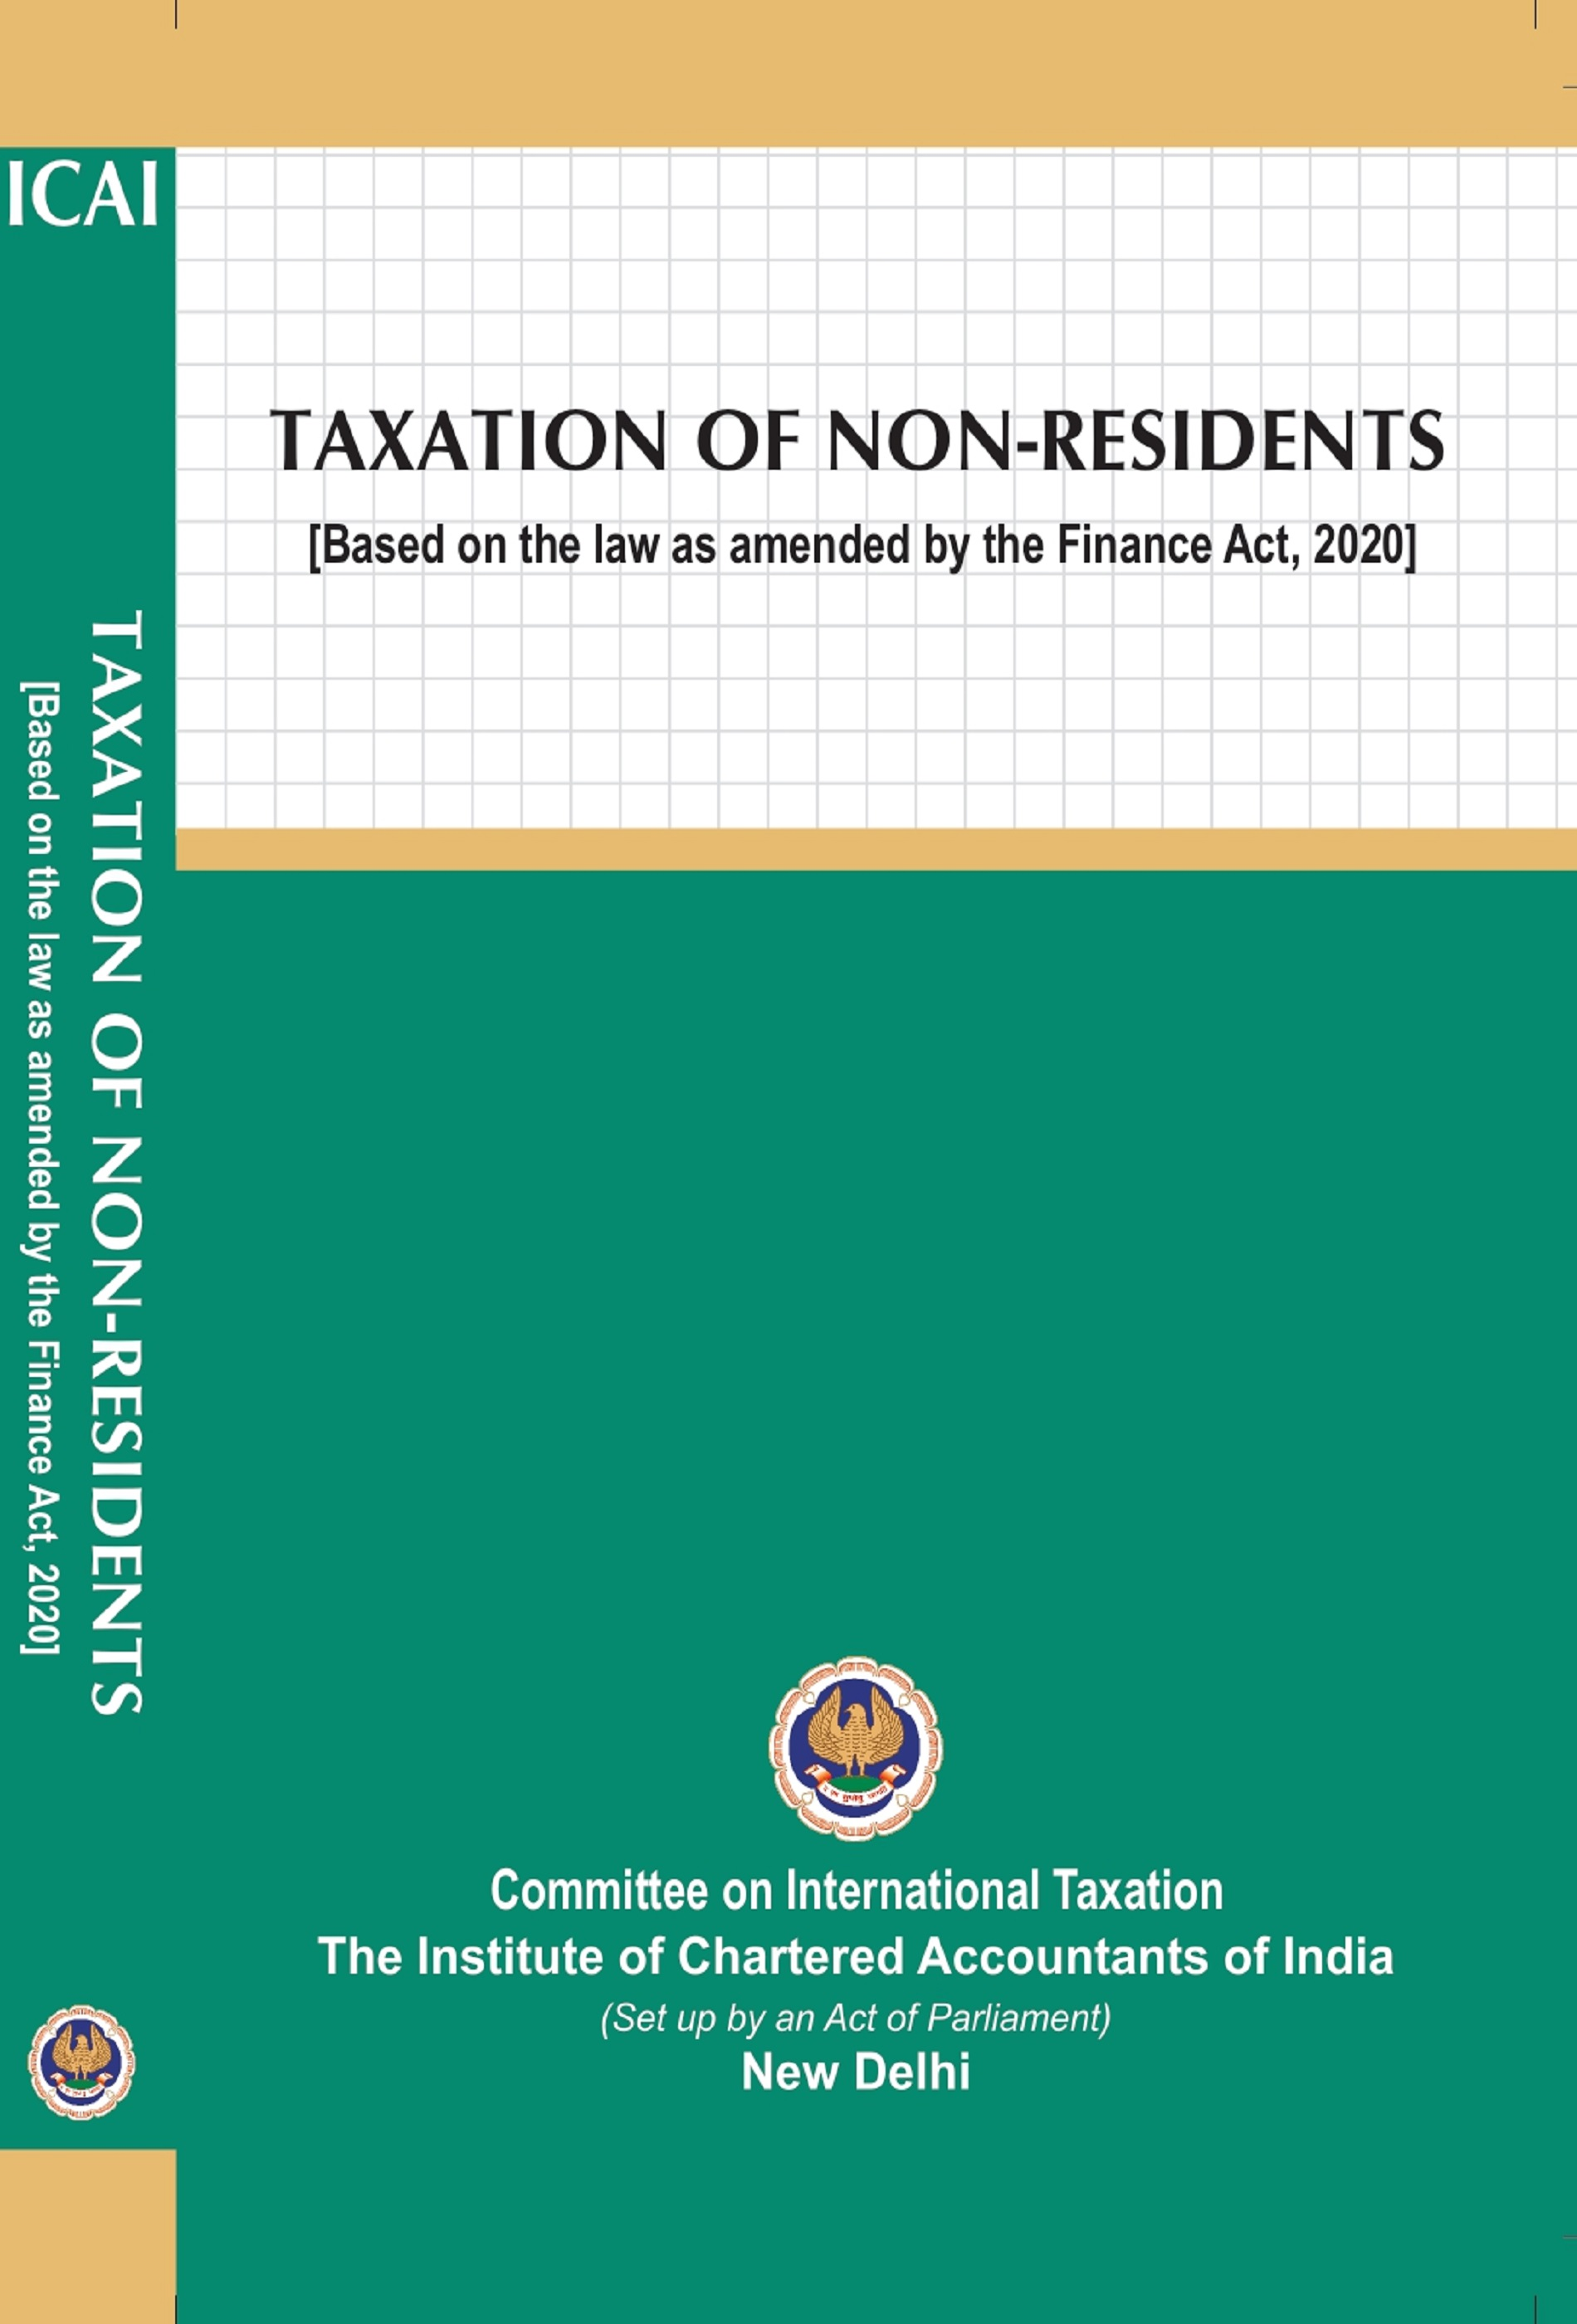 Taxation of Non-Residents (Based on the law as amended by the Finance Act, 2020) (February, 2021)